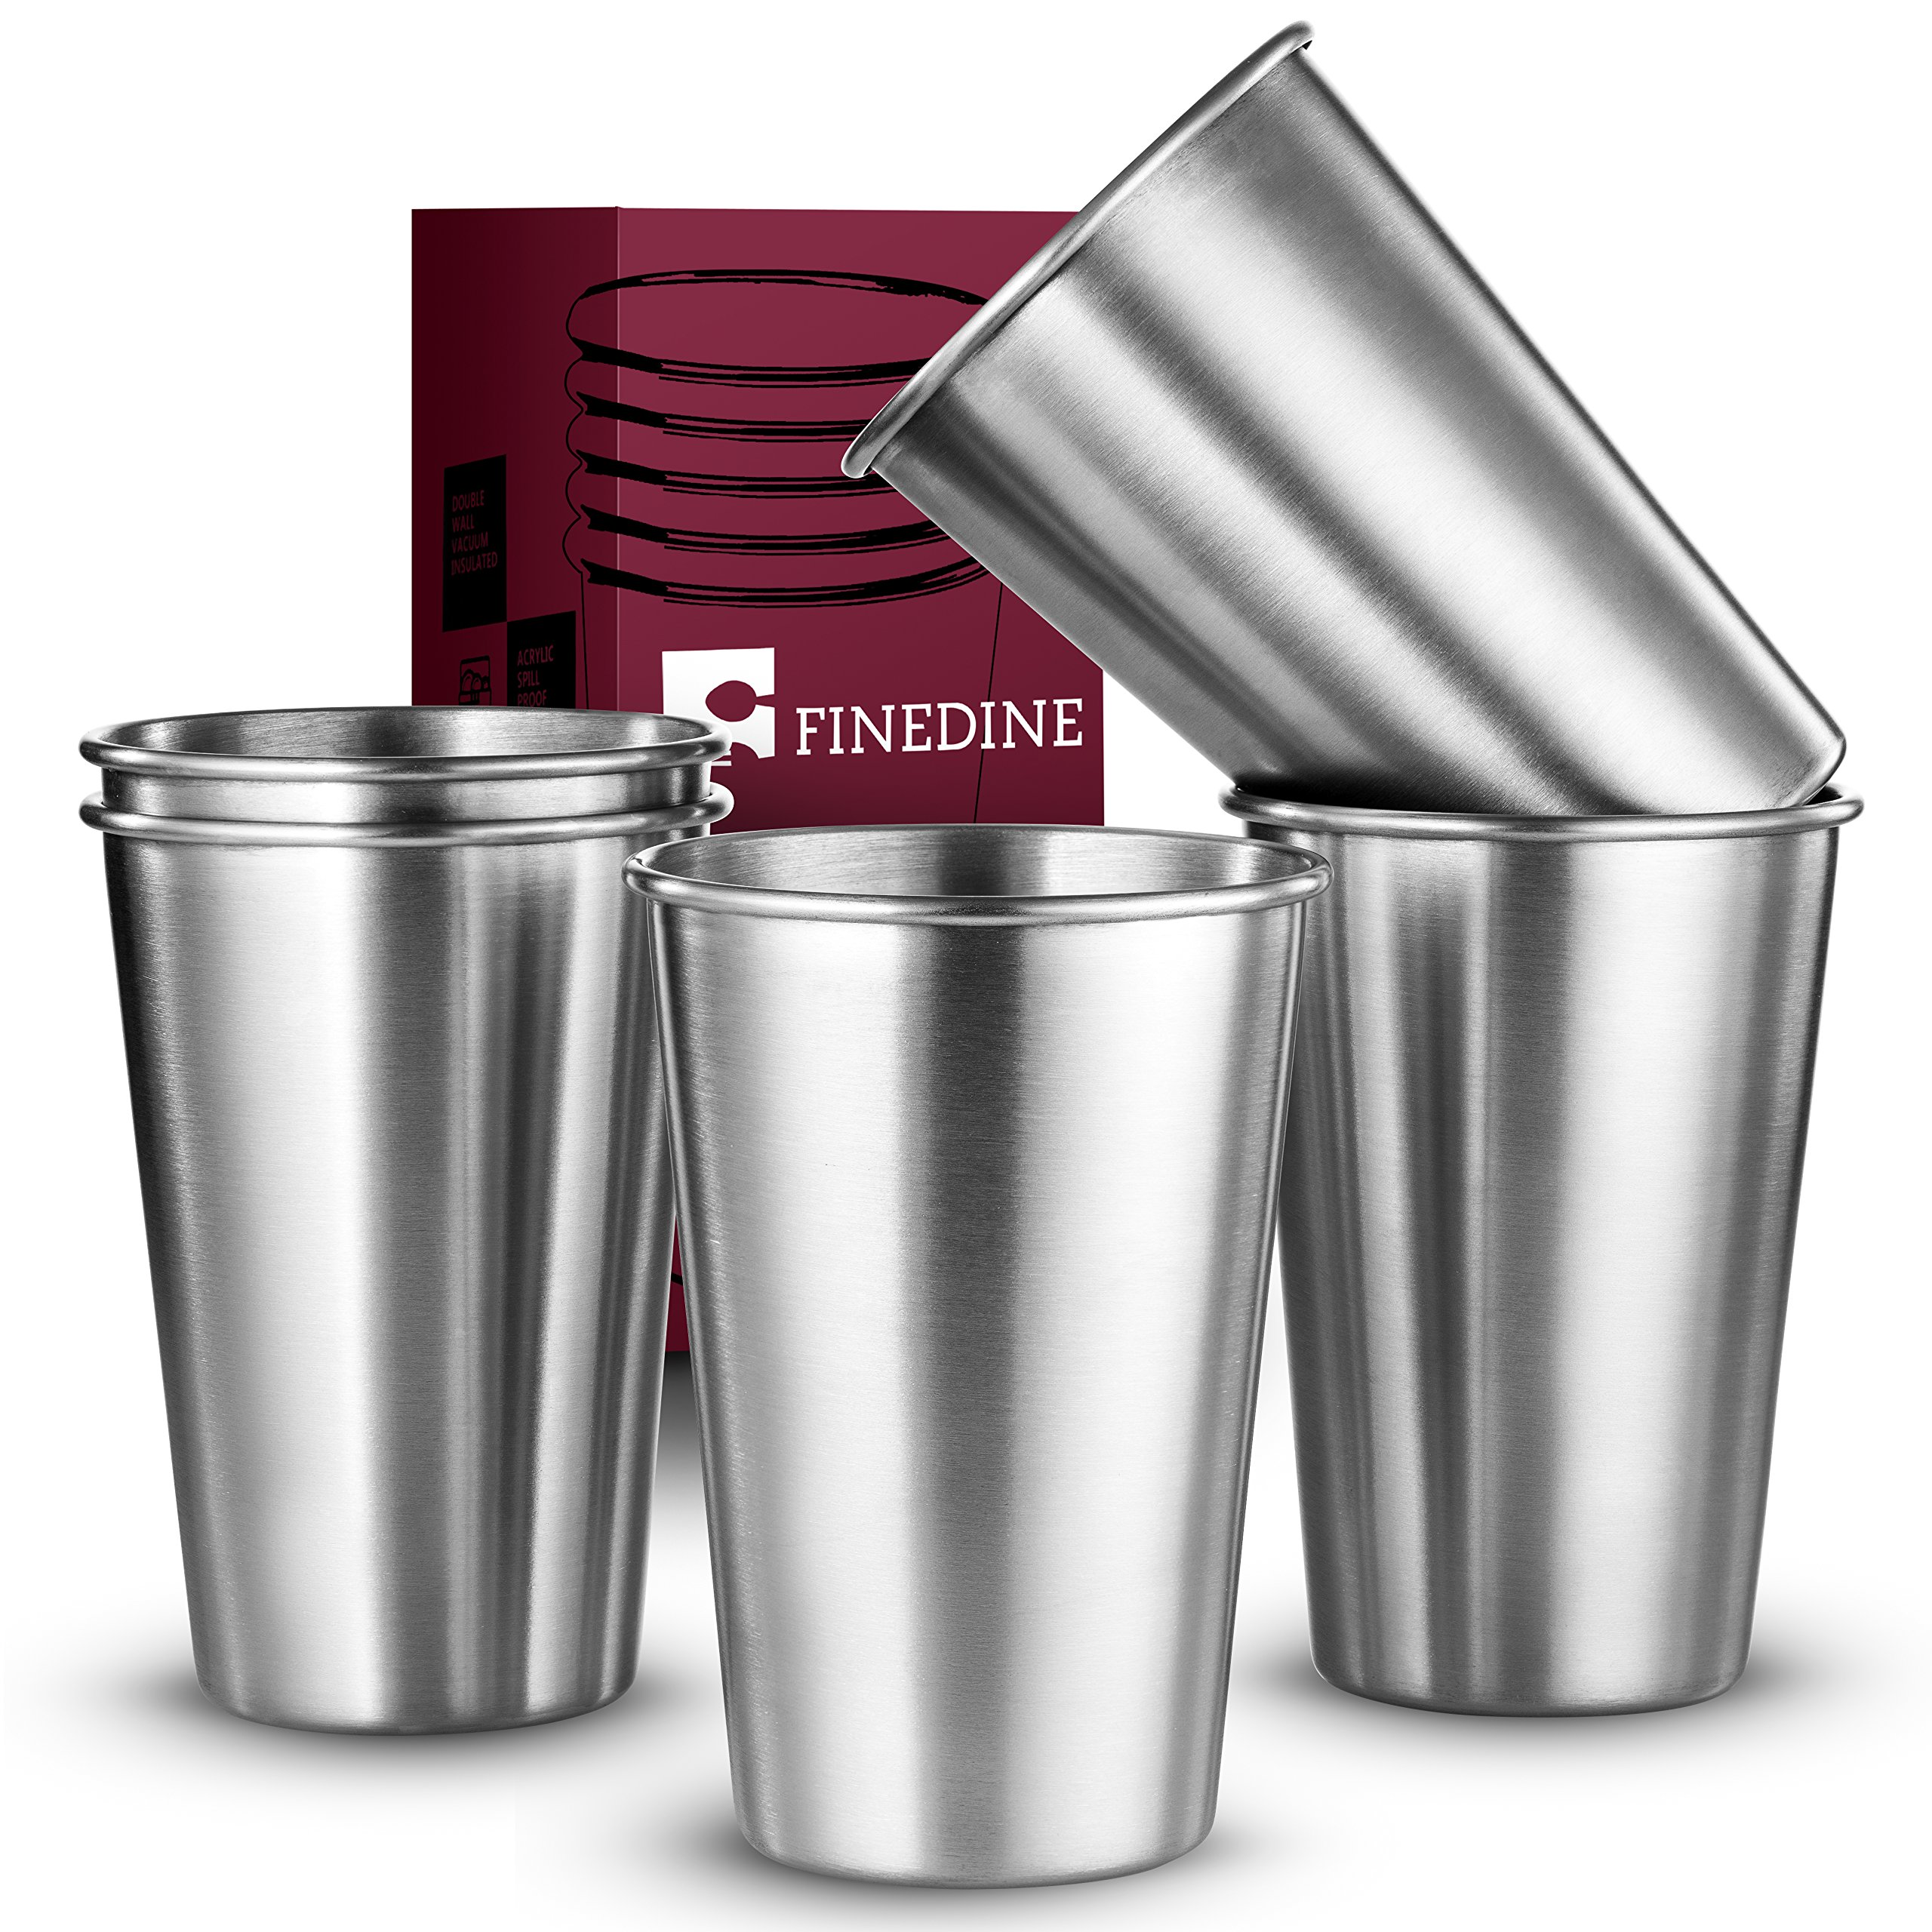 FineDine Premium Grade Stainless Steel Pint Cups Water Tumblers (5 Piece) Unbreakable, Stackable, Brushed Metal Drinking Glasses, Chilling Beer Glasses, for Travel, Outdoor, Camping, & Everyday, 16 Oz by FINEDINE